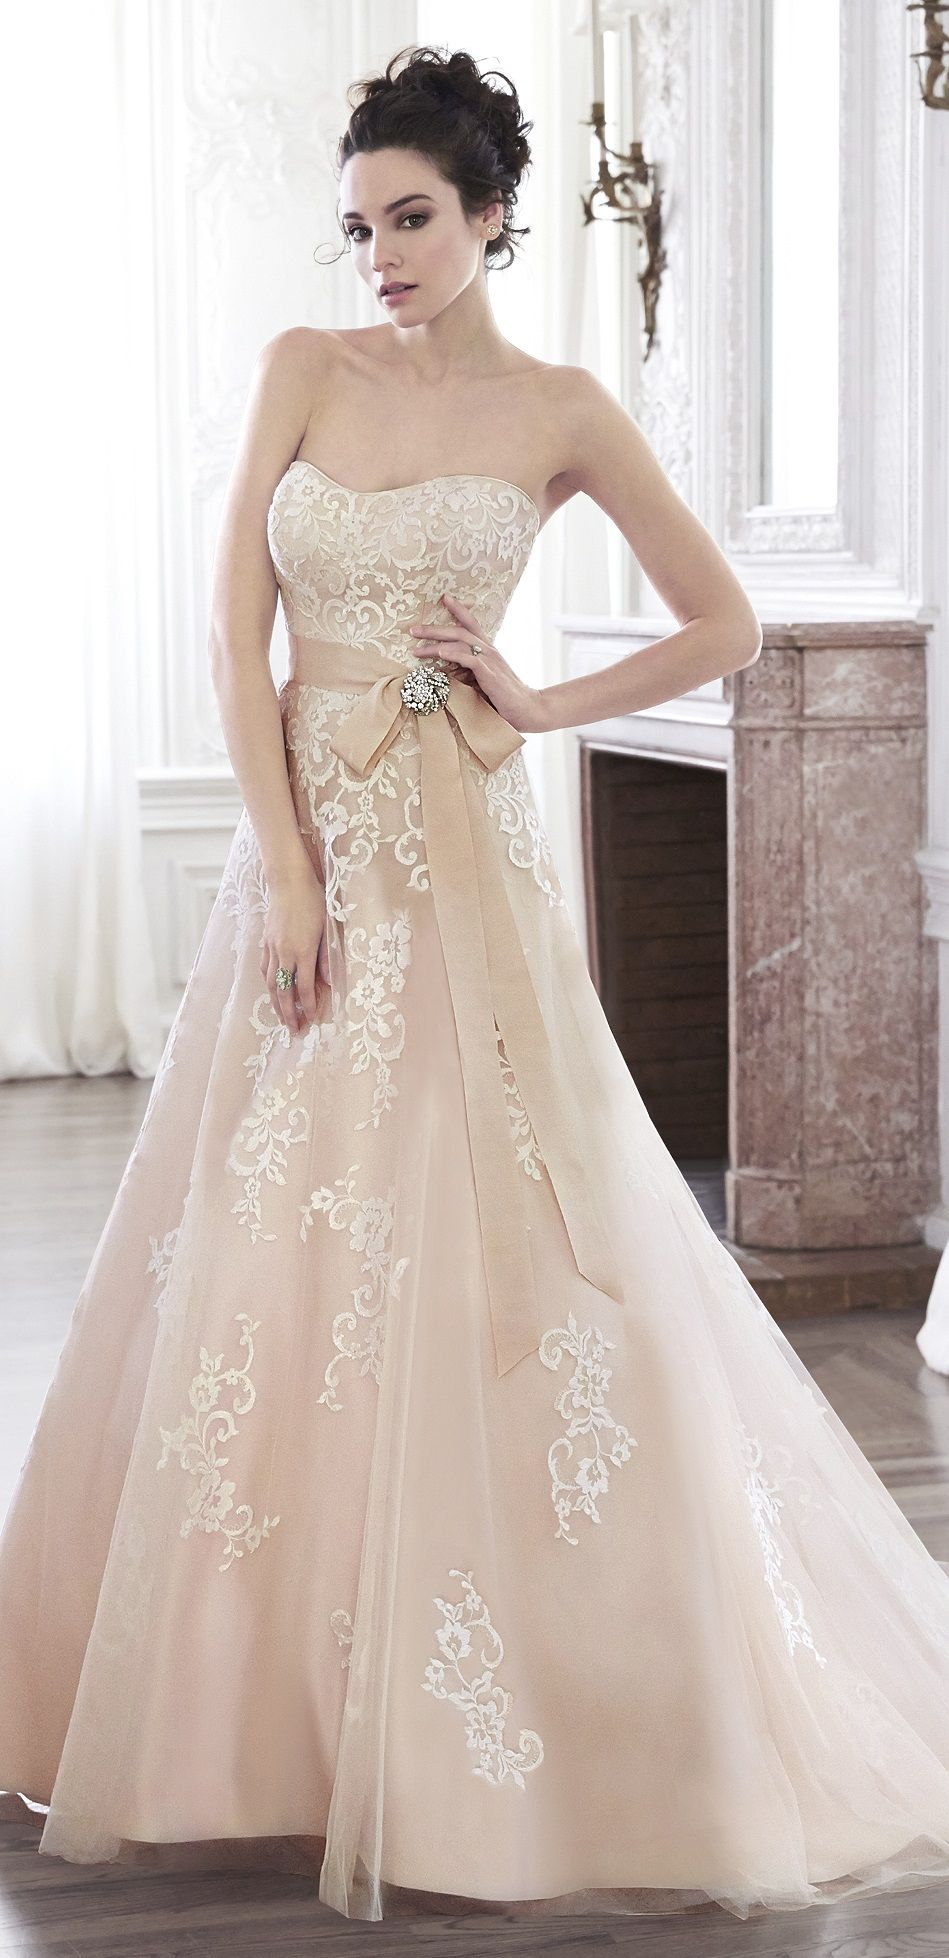 Pretty Peach Wedding Dress From Maggie Sottero: Pritty Dresses Peach Wedding At Reisefeber.org